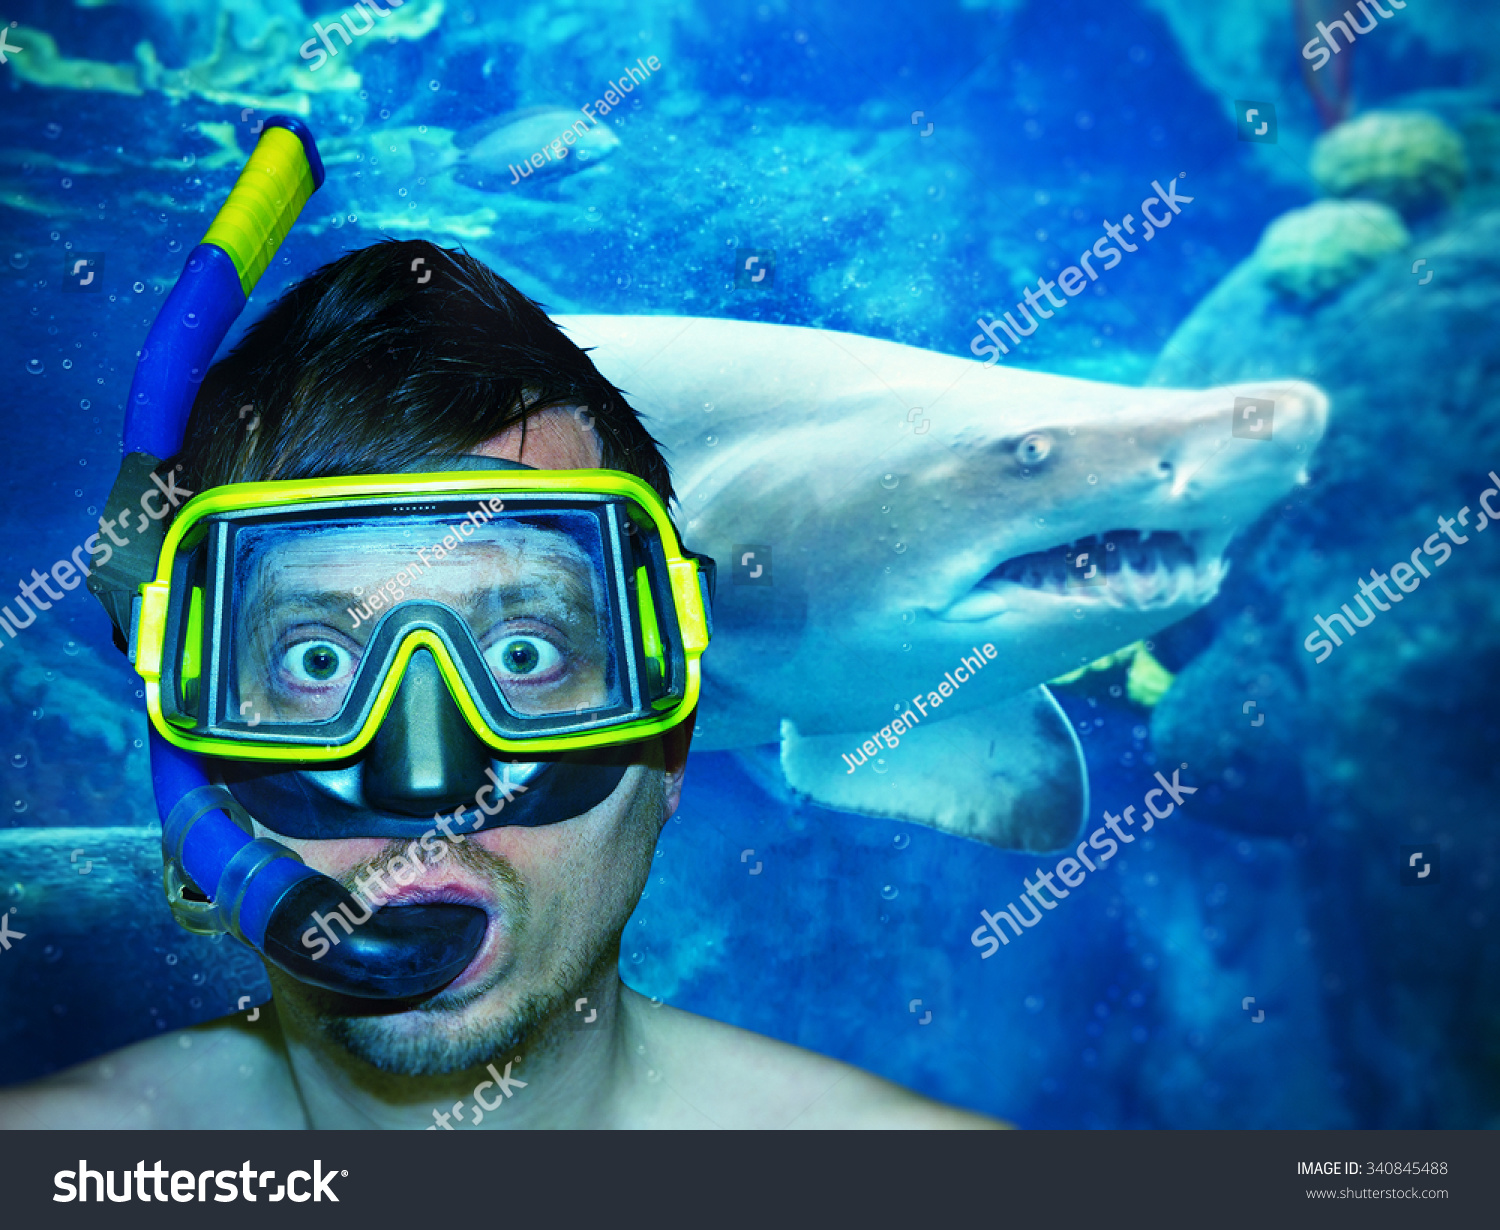 Diver with shark in background